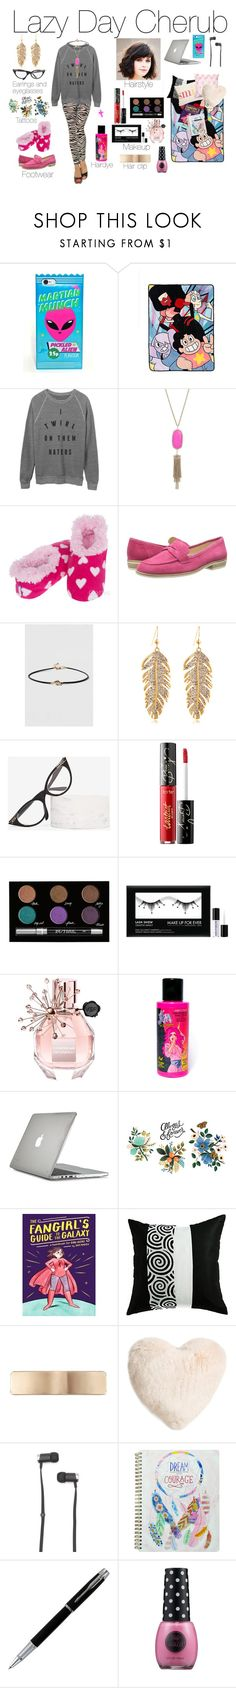 """""""Lazy Day Cherub"""" by emmasart ❤ liked on Polyvore featuring Kendra Scott, Nine West, Fantas-Eyes, tarte, Urban Decay, MAKE UP FOR EVER, Viktor & Rolf, Manic Panic NYC, Speck and Tattly"""